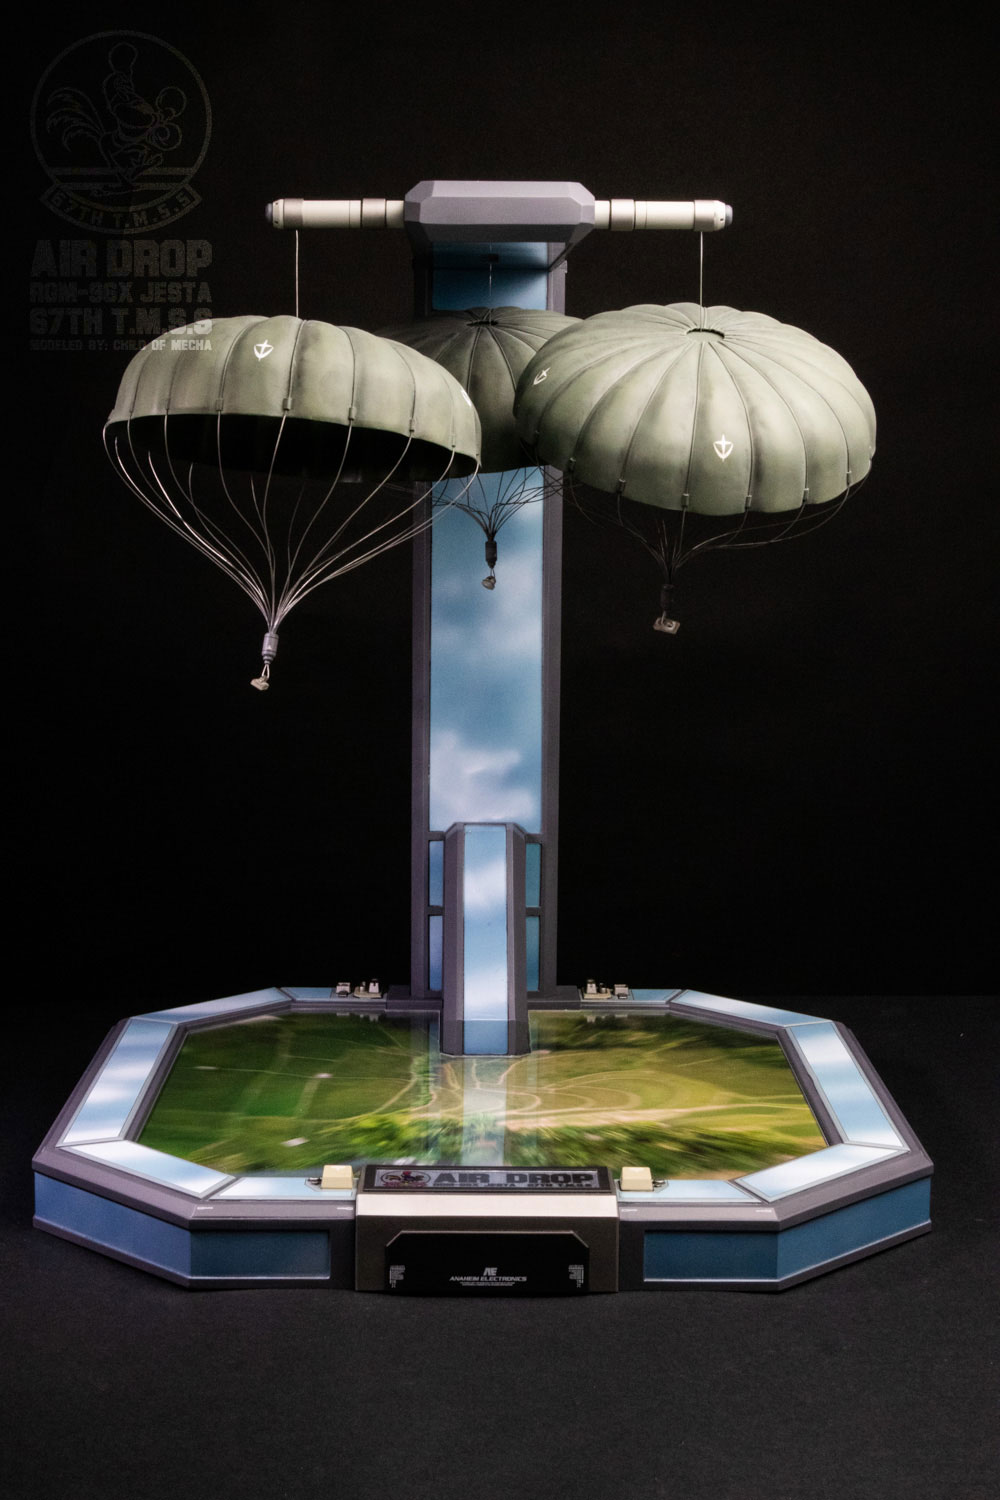 Air Drop - Jesta - 122.jpg